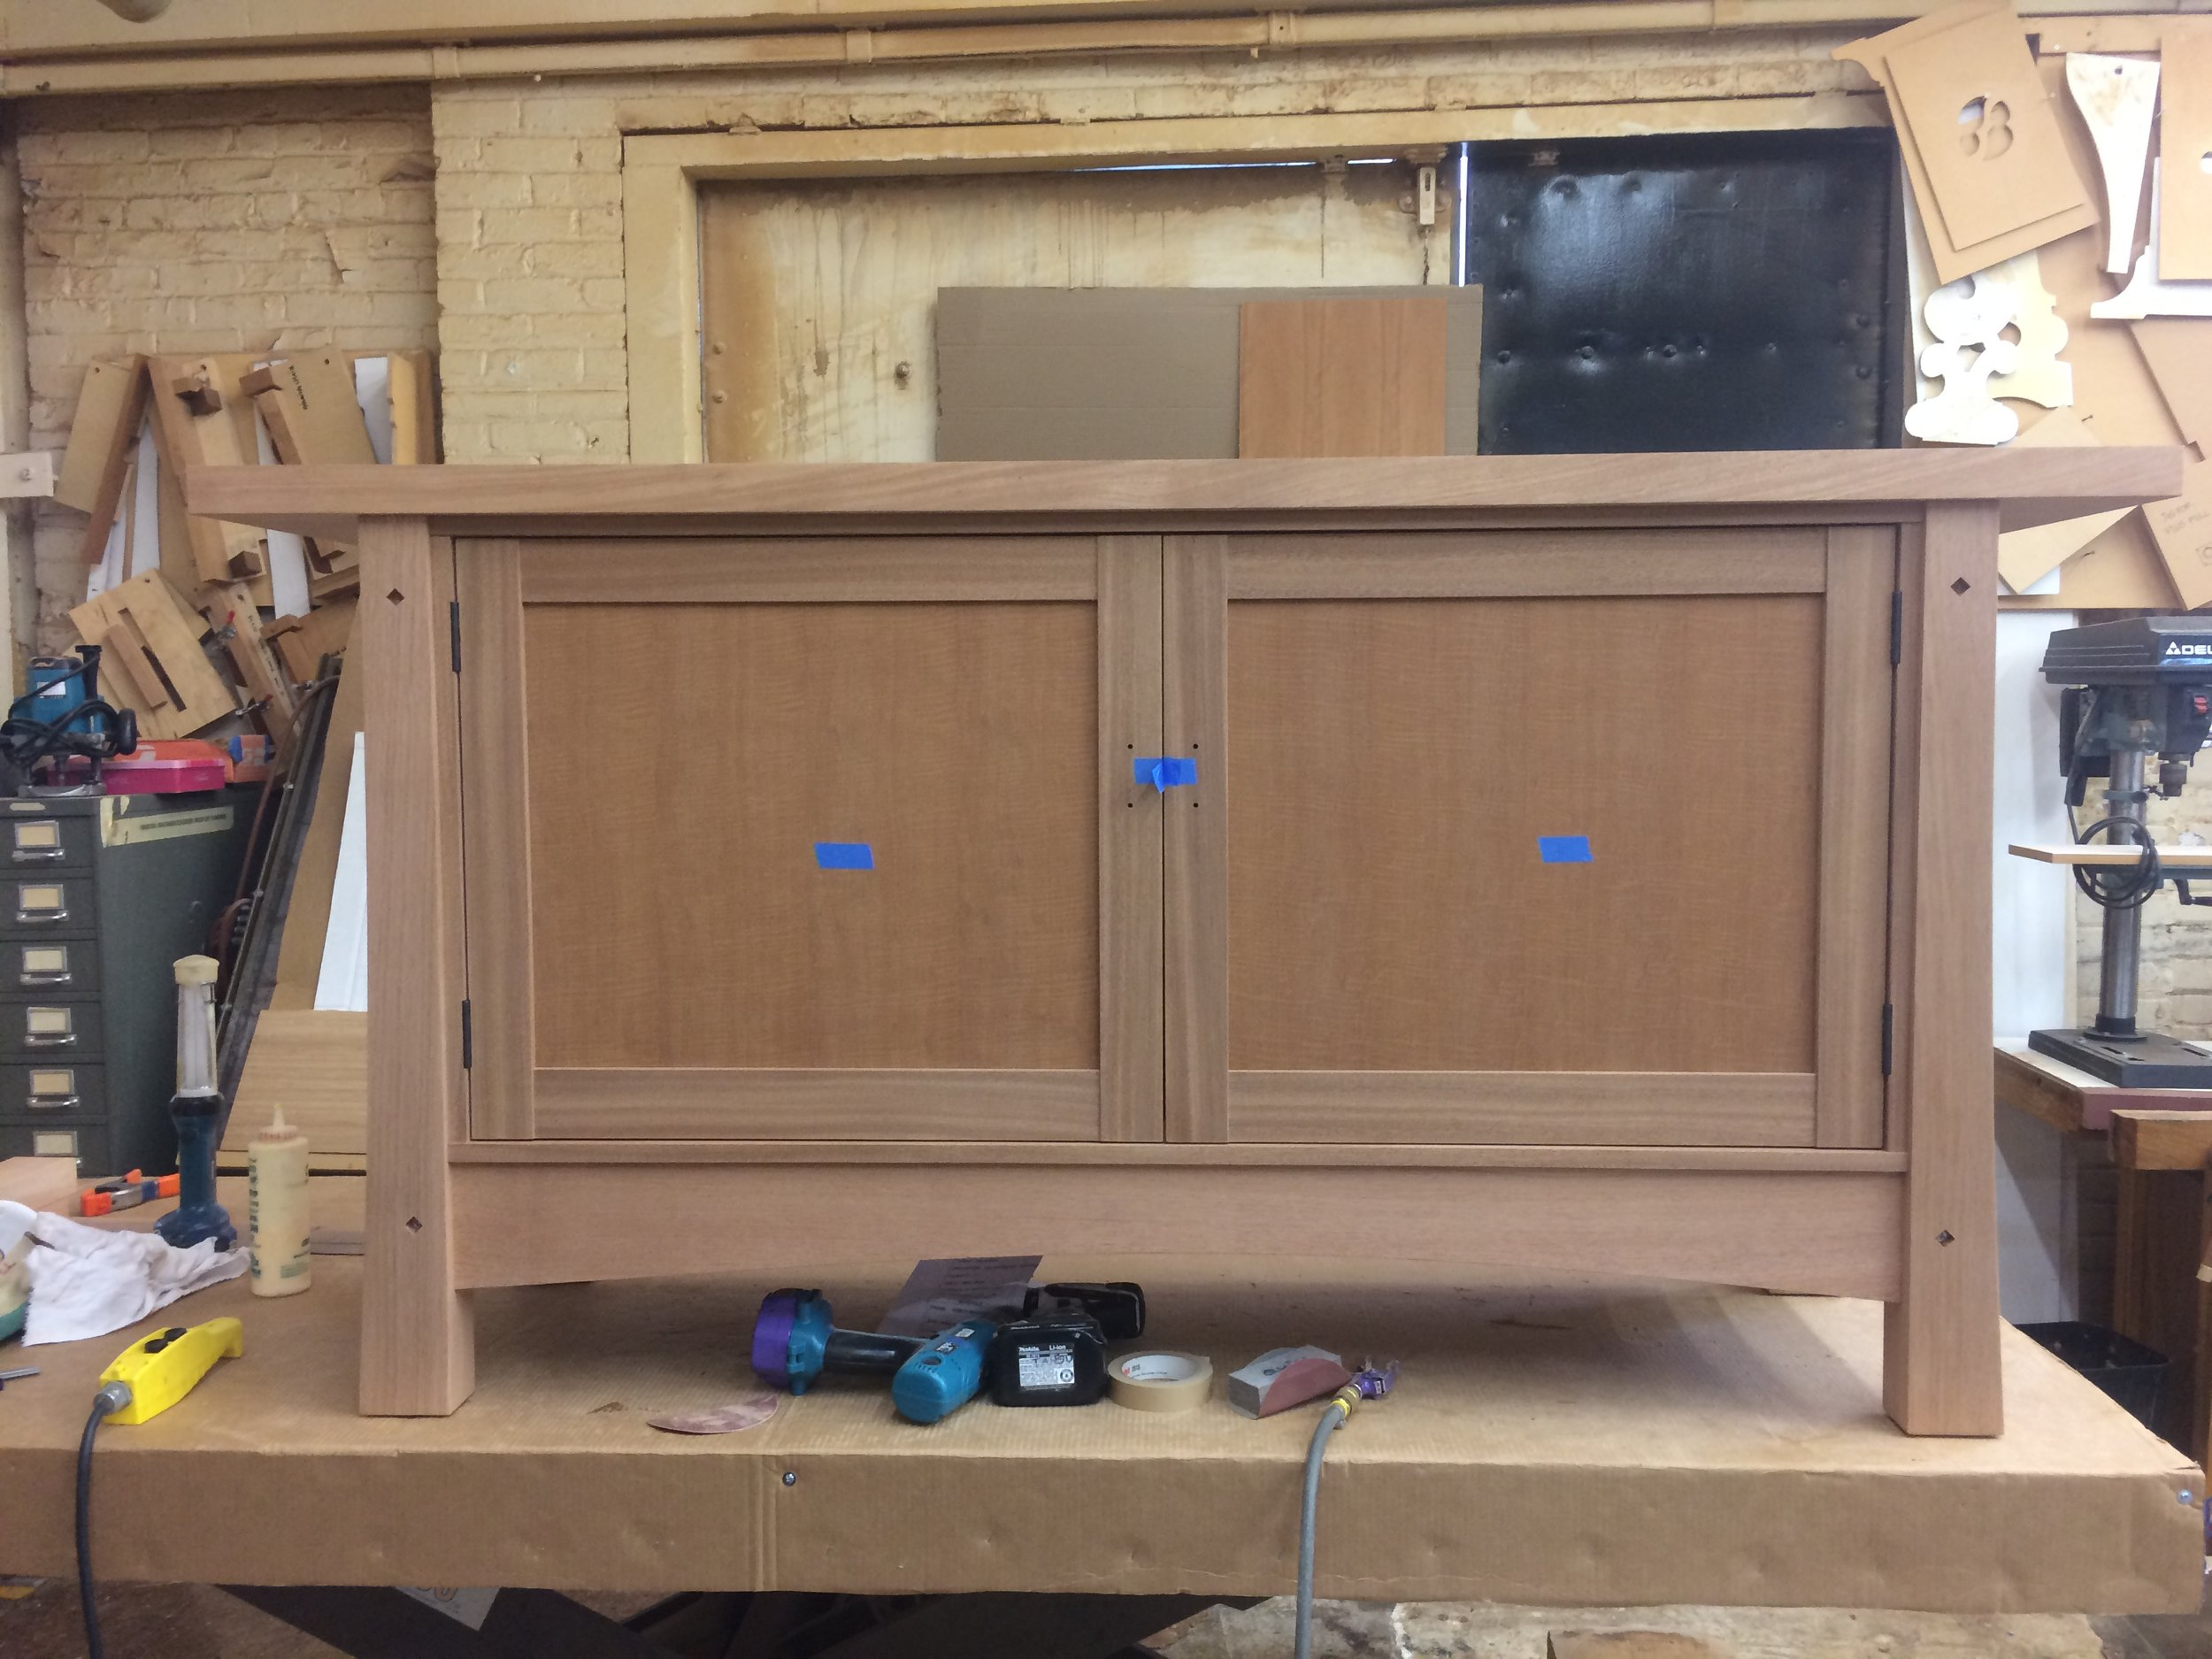 a sideboard under construction, at Berkeley Mills Furniture, my employer from 2012-2019, veneered door panels by yours truly